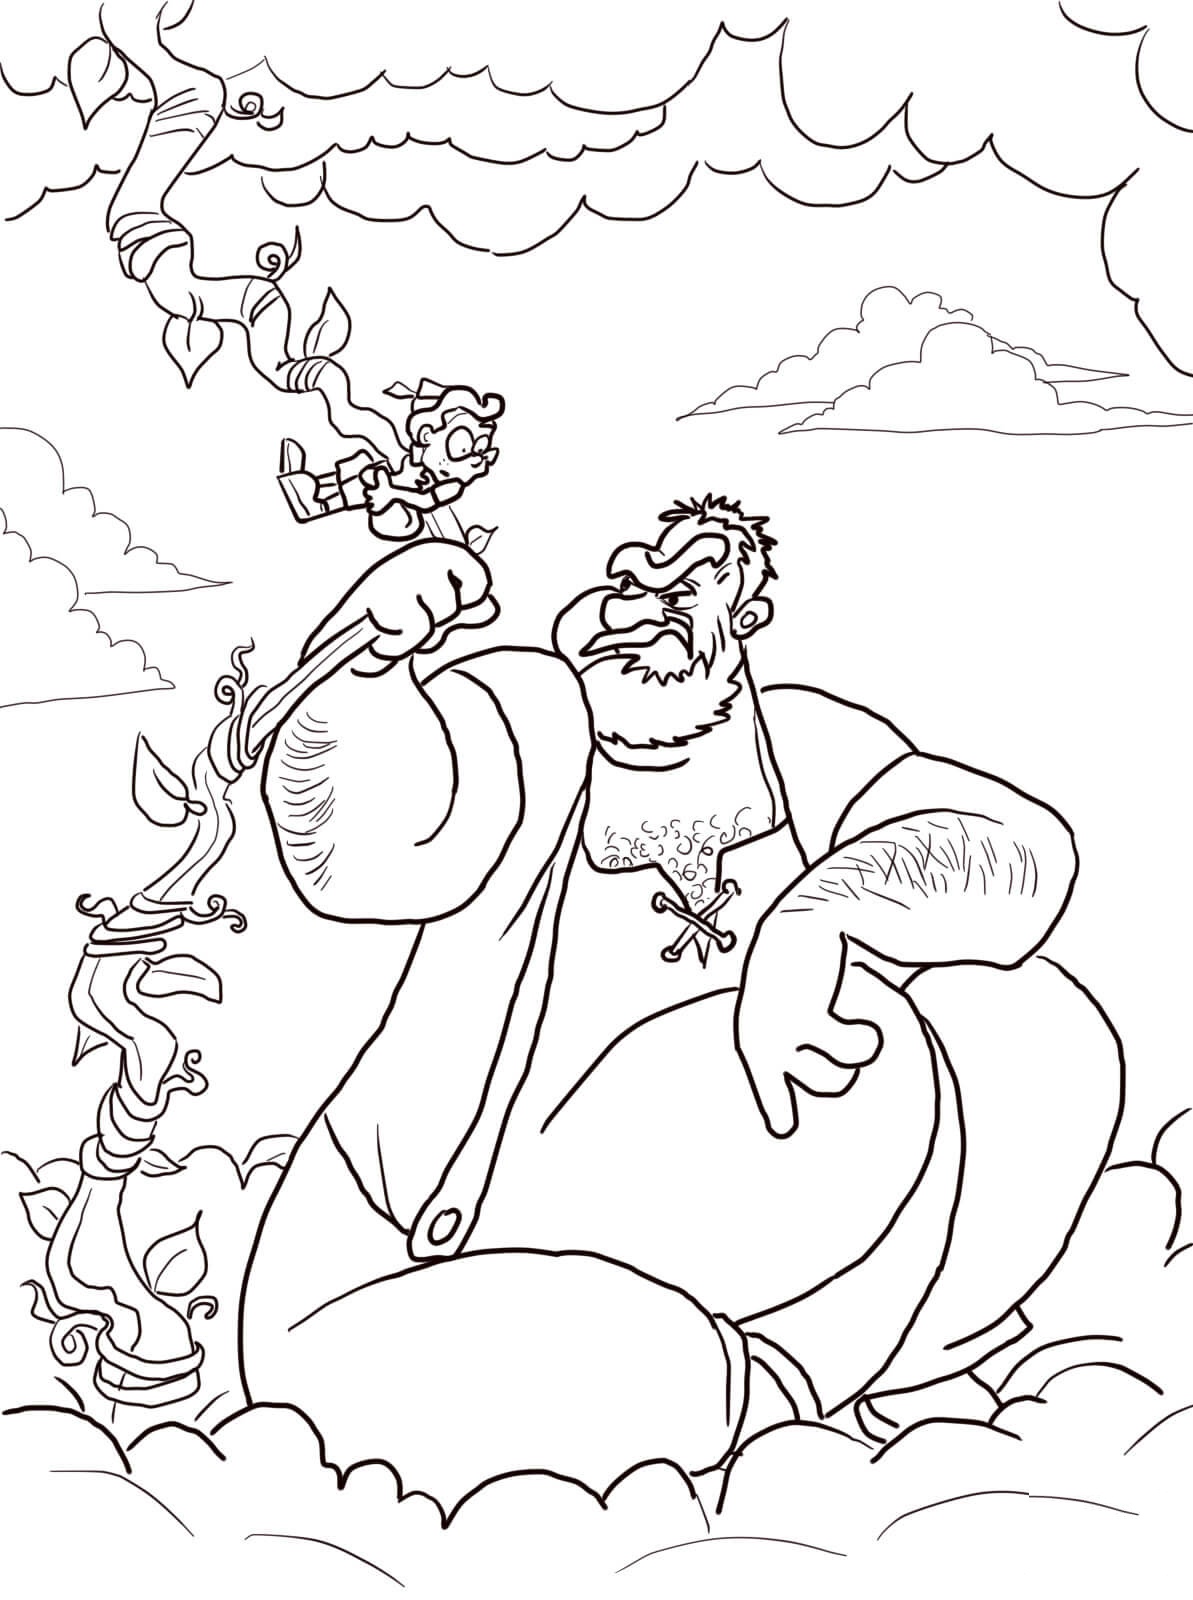 jack and the beanstalk giant coloring pages